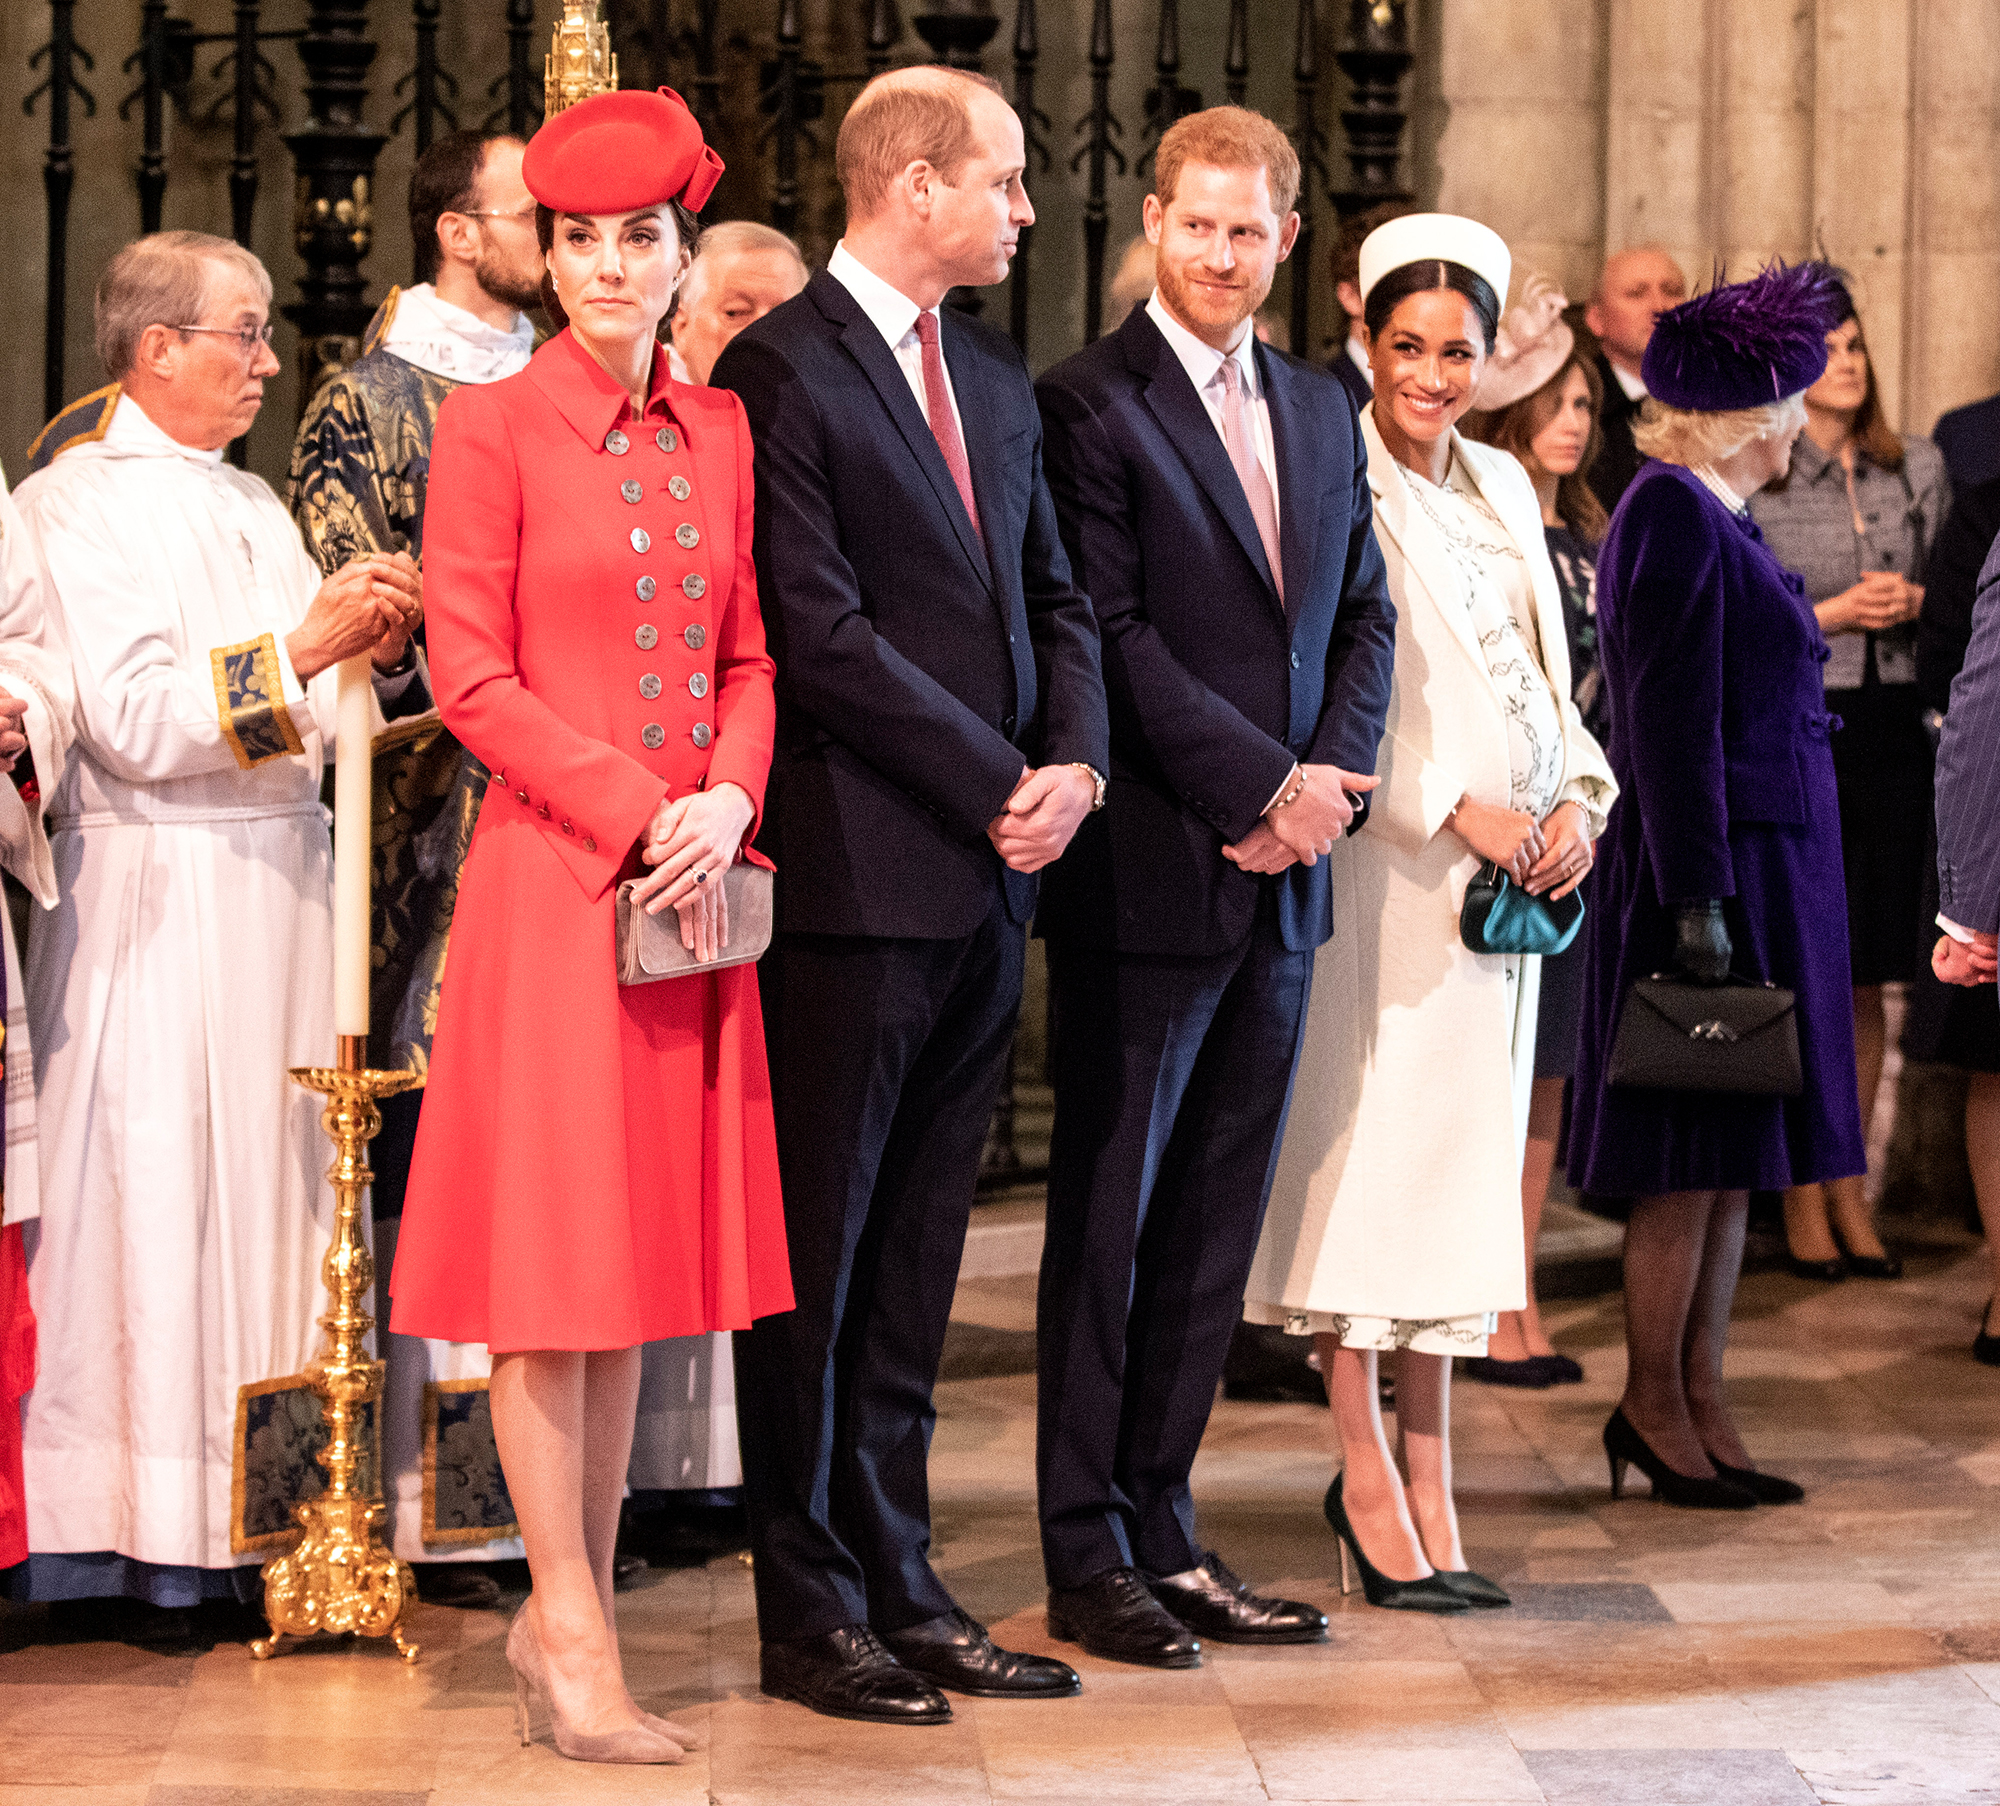 Kate Middleton Prince William Prince Harry Meghan Markle on Commonwealth Day 2019